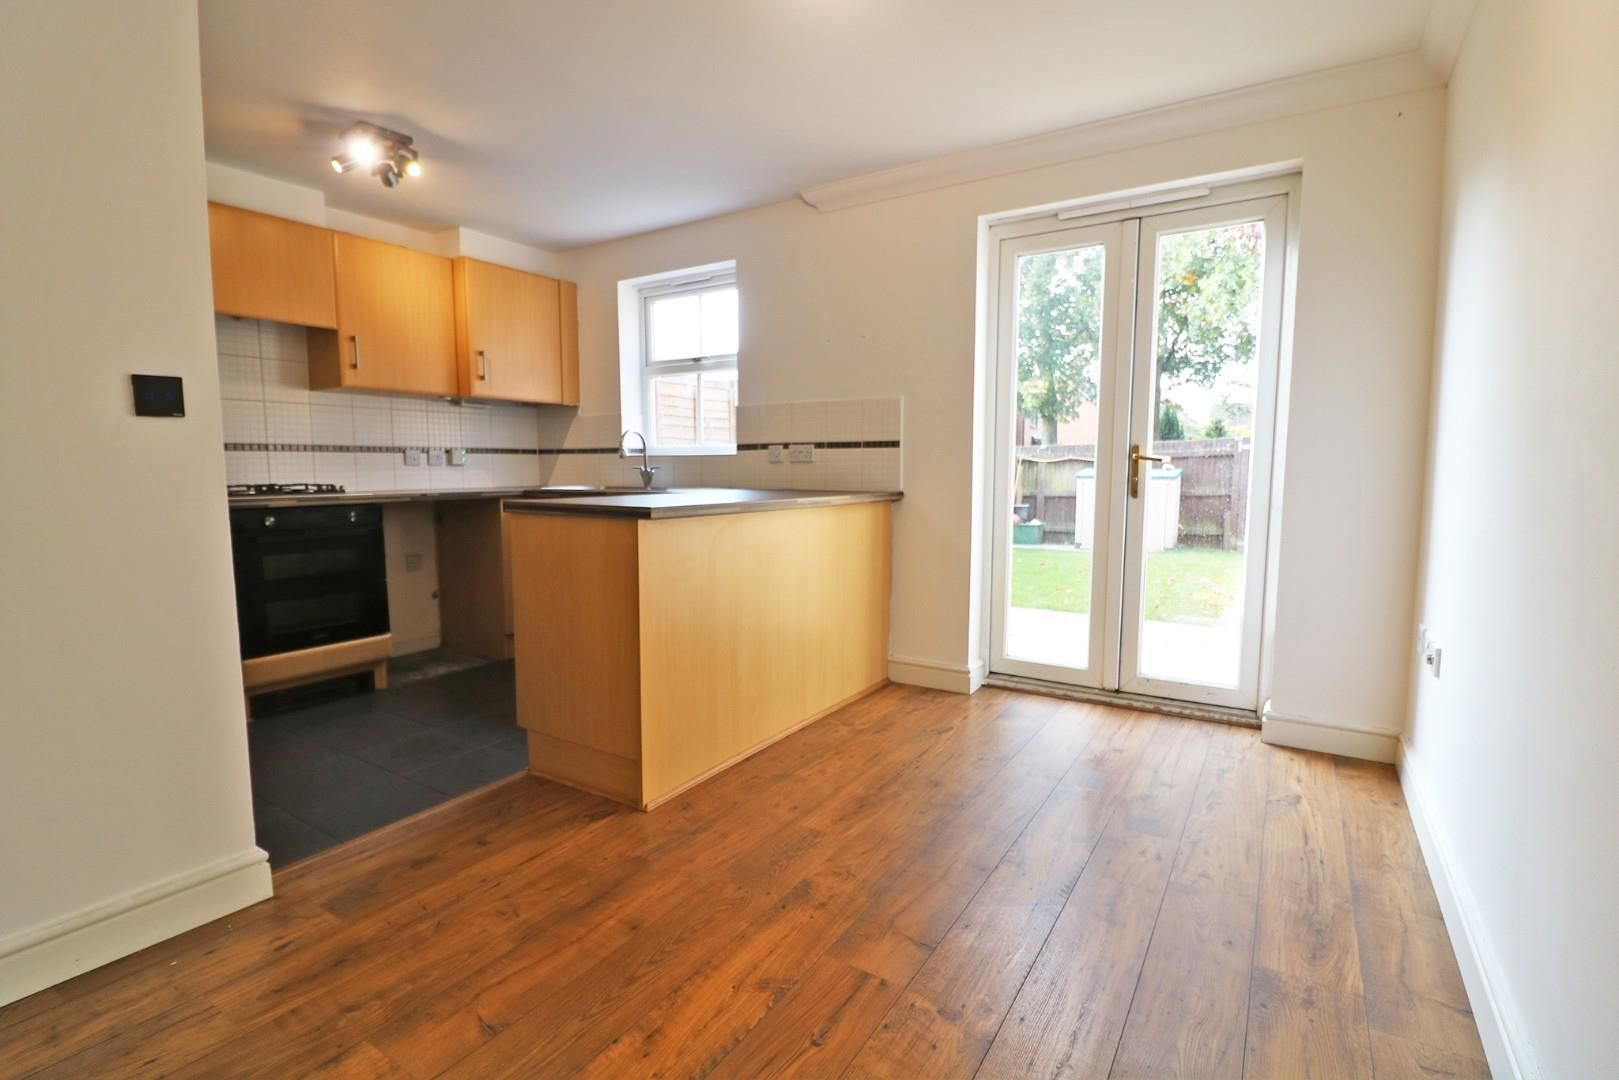 4 bed town house for sale 4